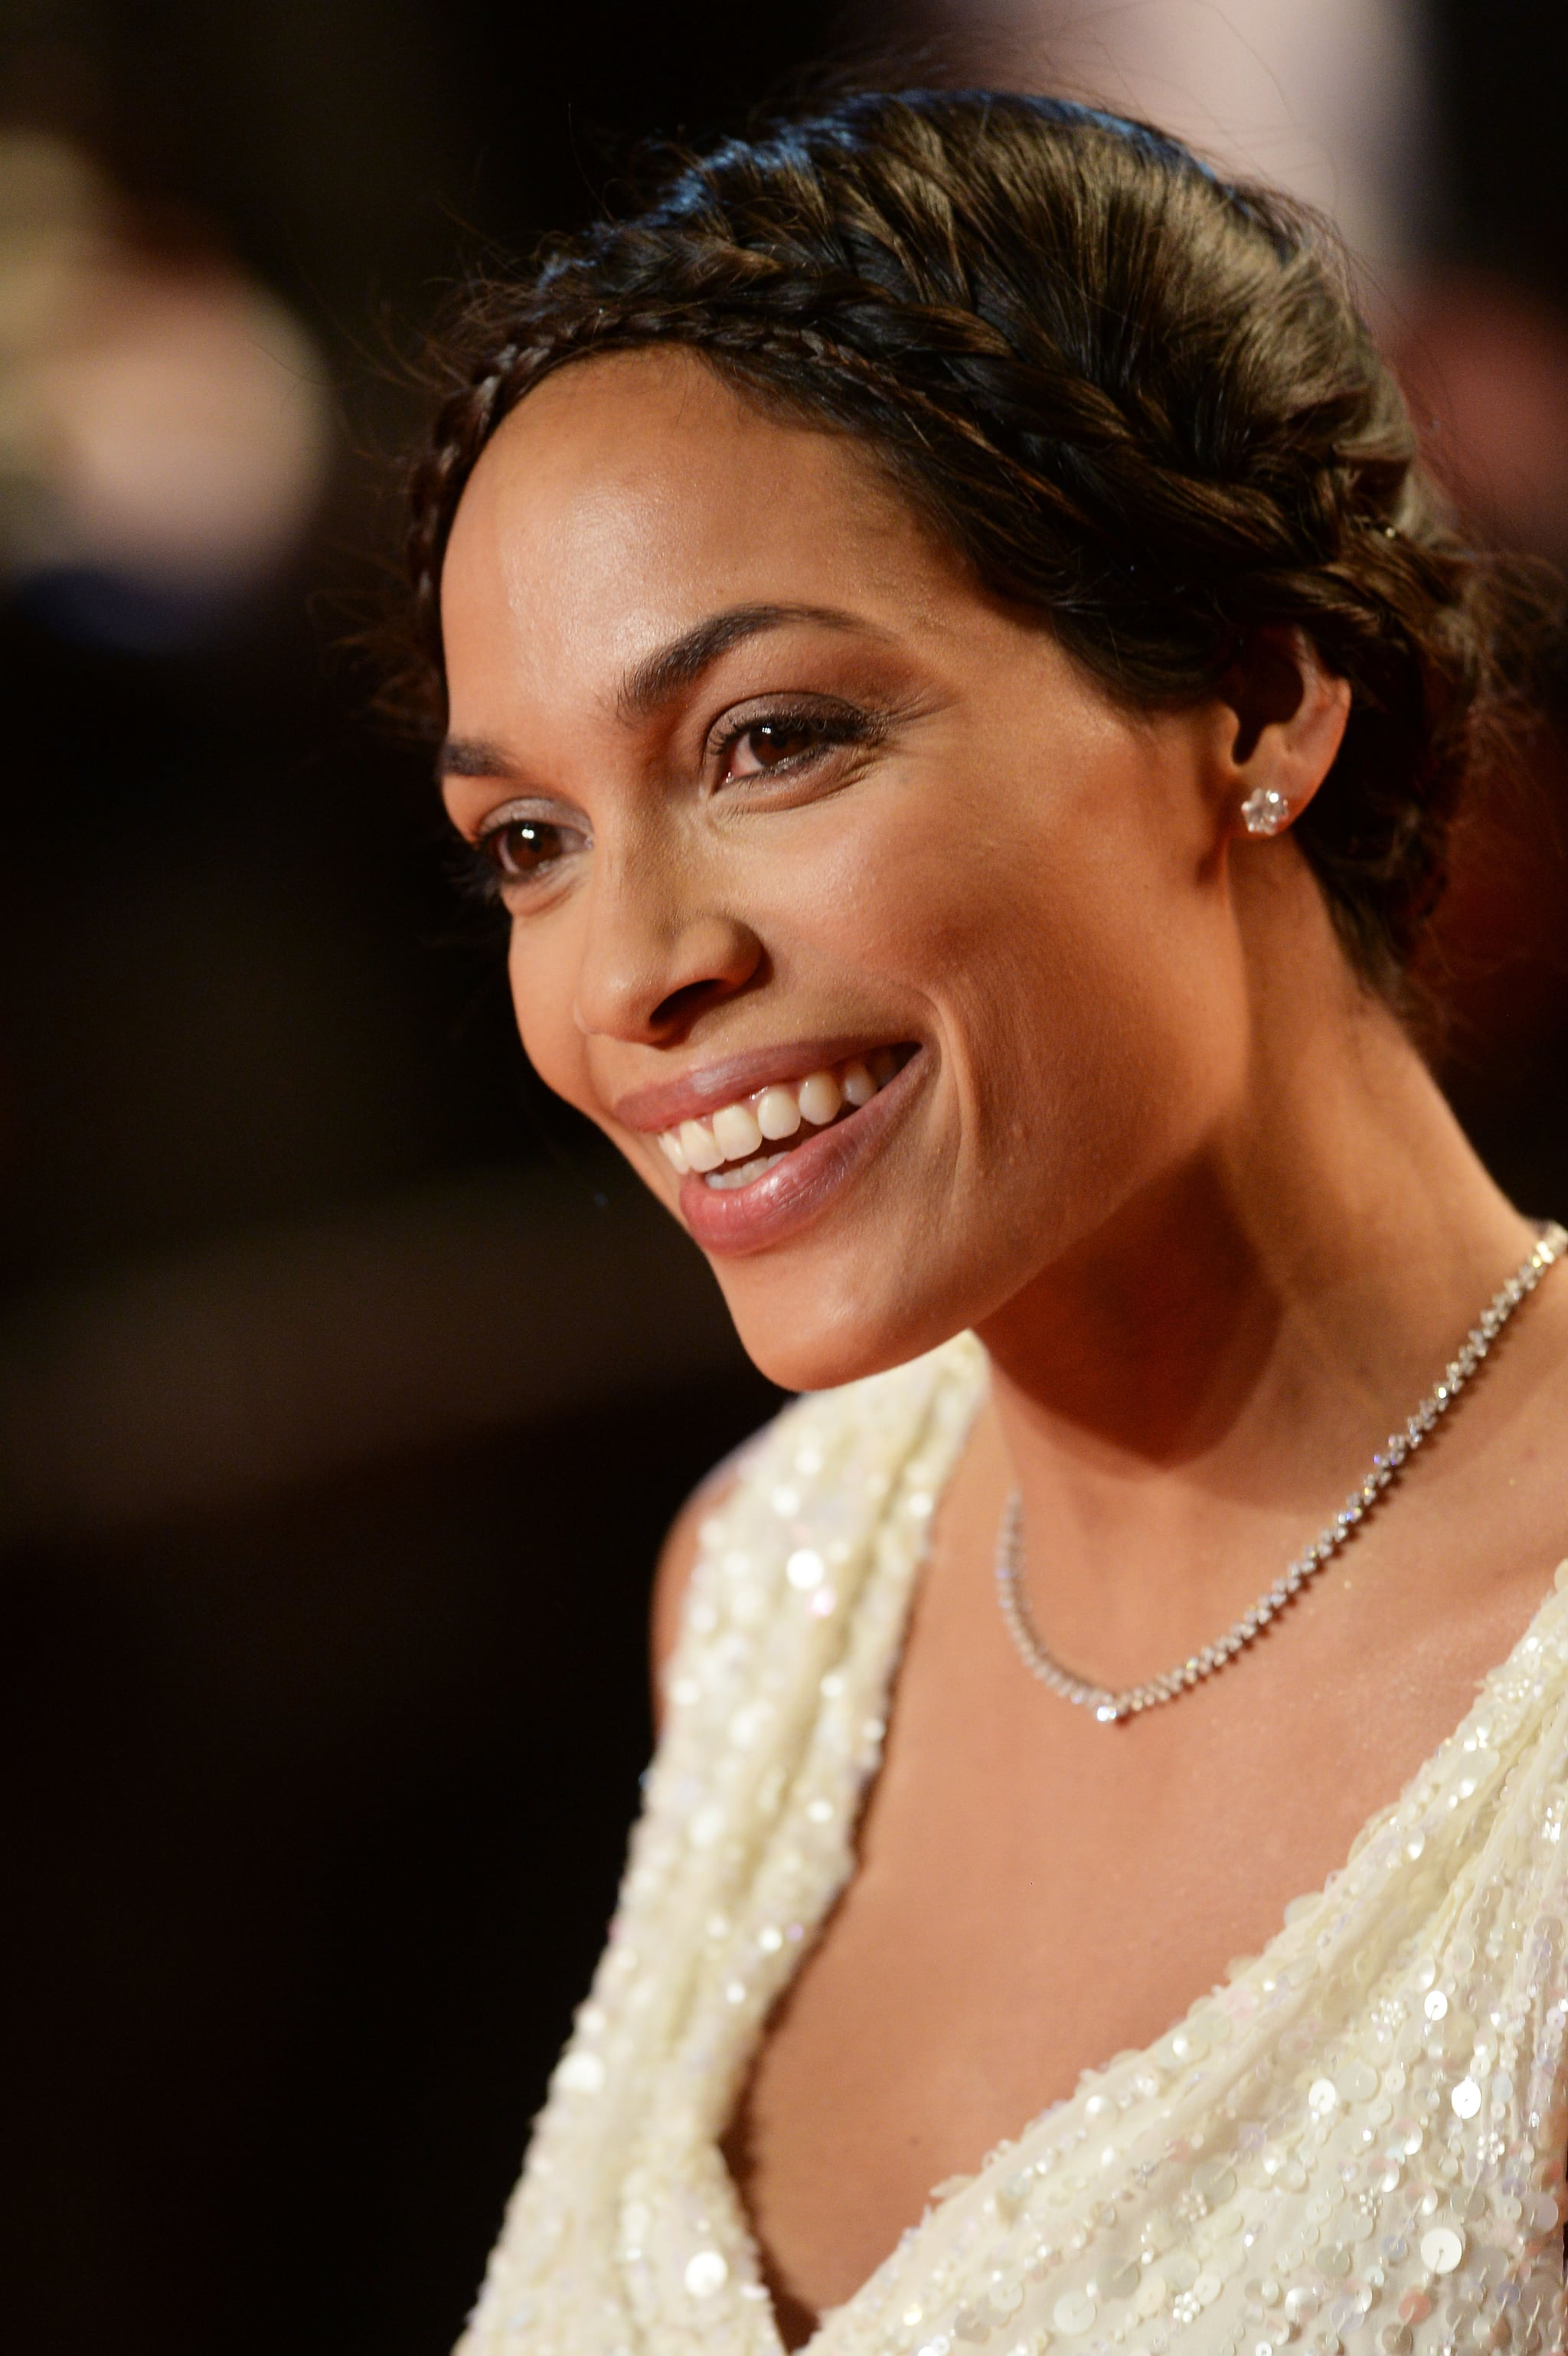 For her turn on the As I Lay Dying red carpet, Rosario Dawson shined with a natural glow. Brides with medium skin tones can easily mimic her look.